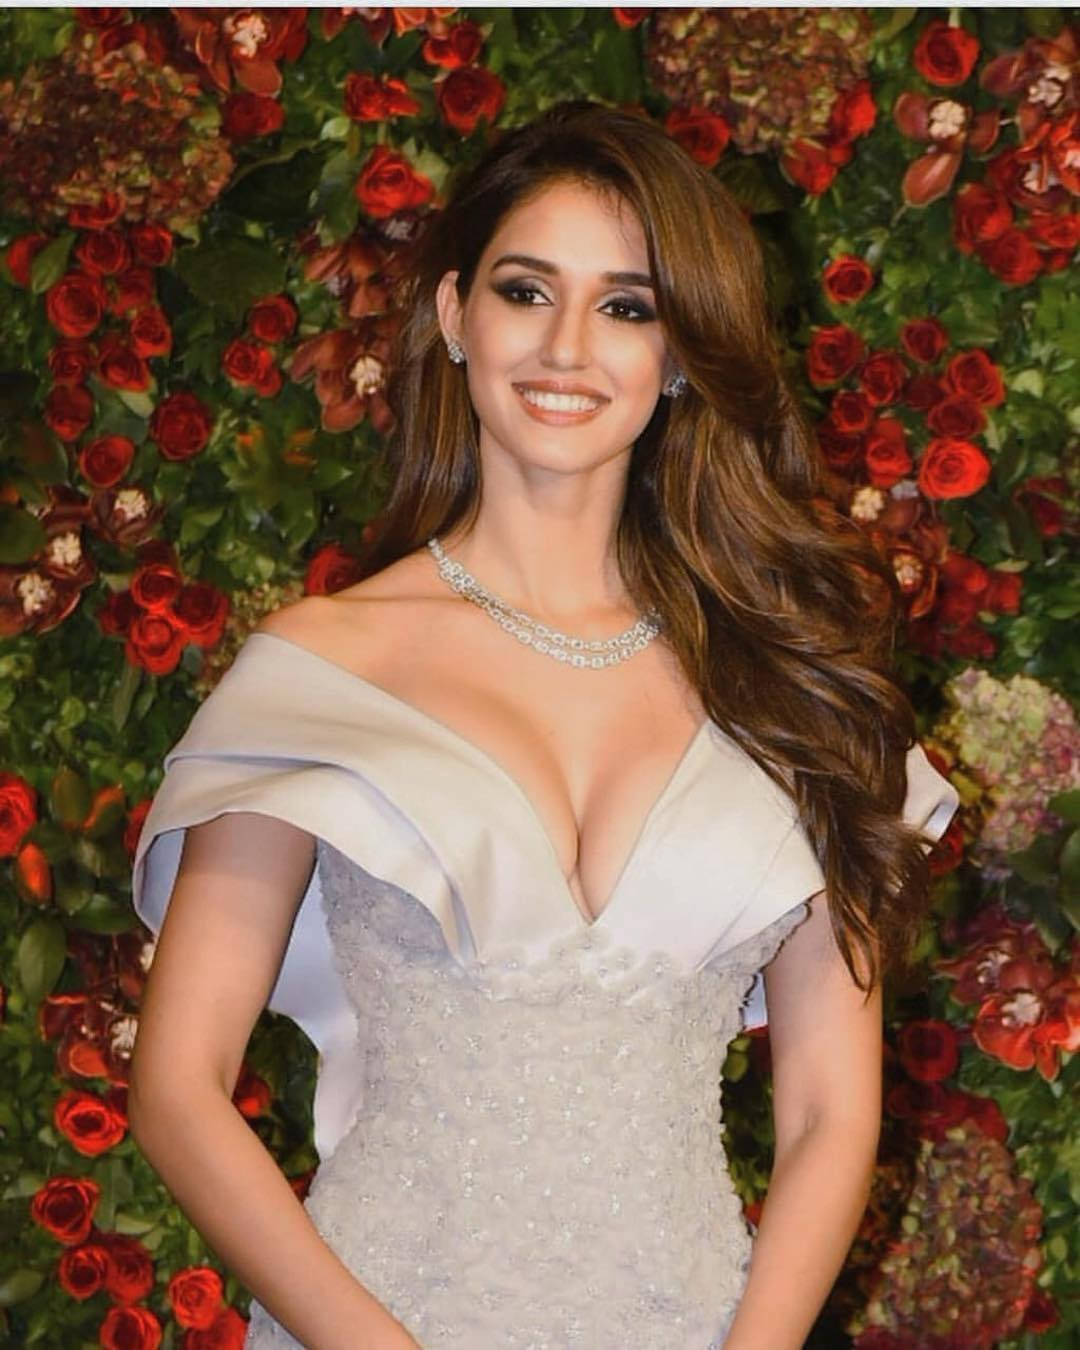 Disha Patani Sexy Big Boobs Pictures on Beautifull Dress